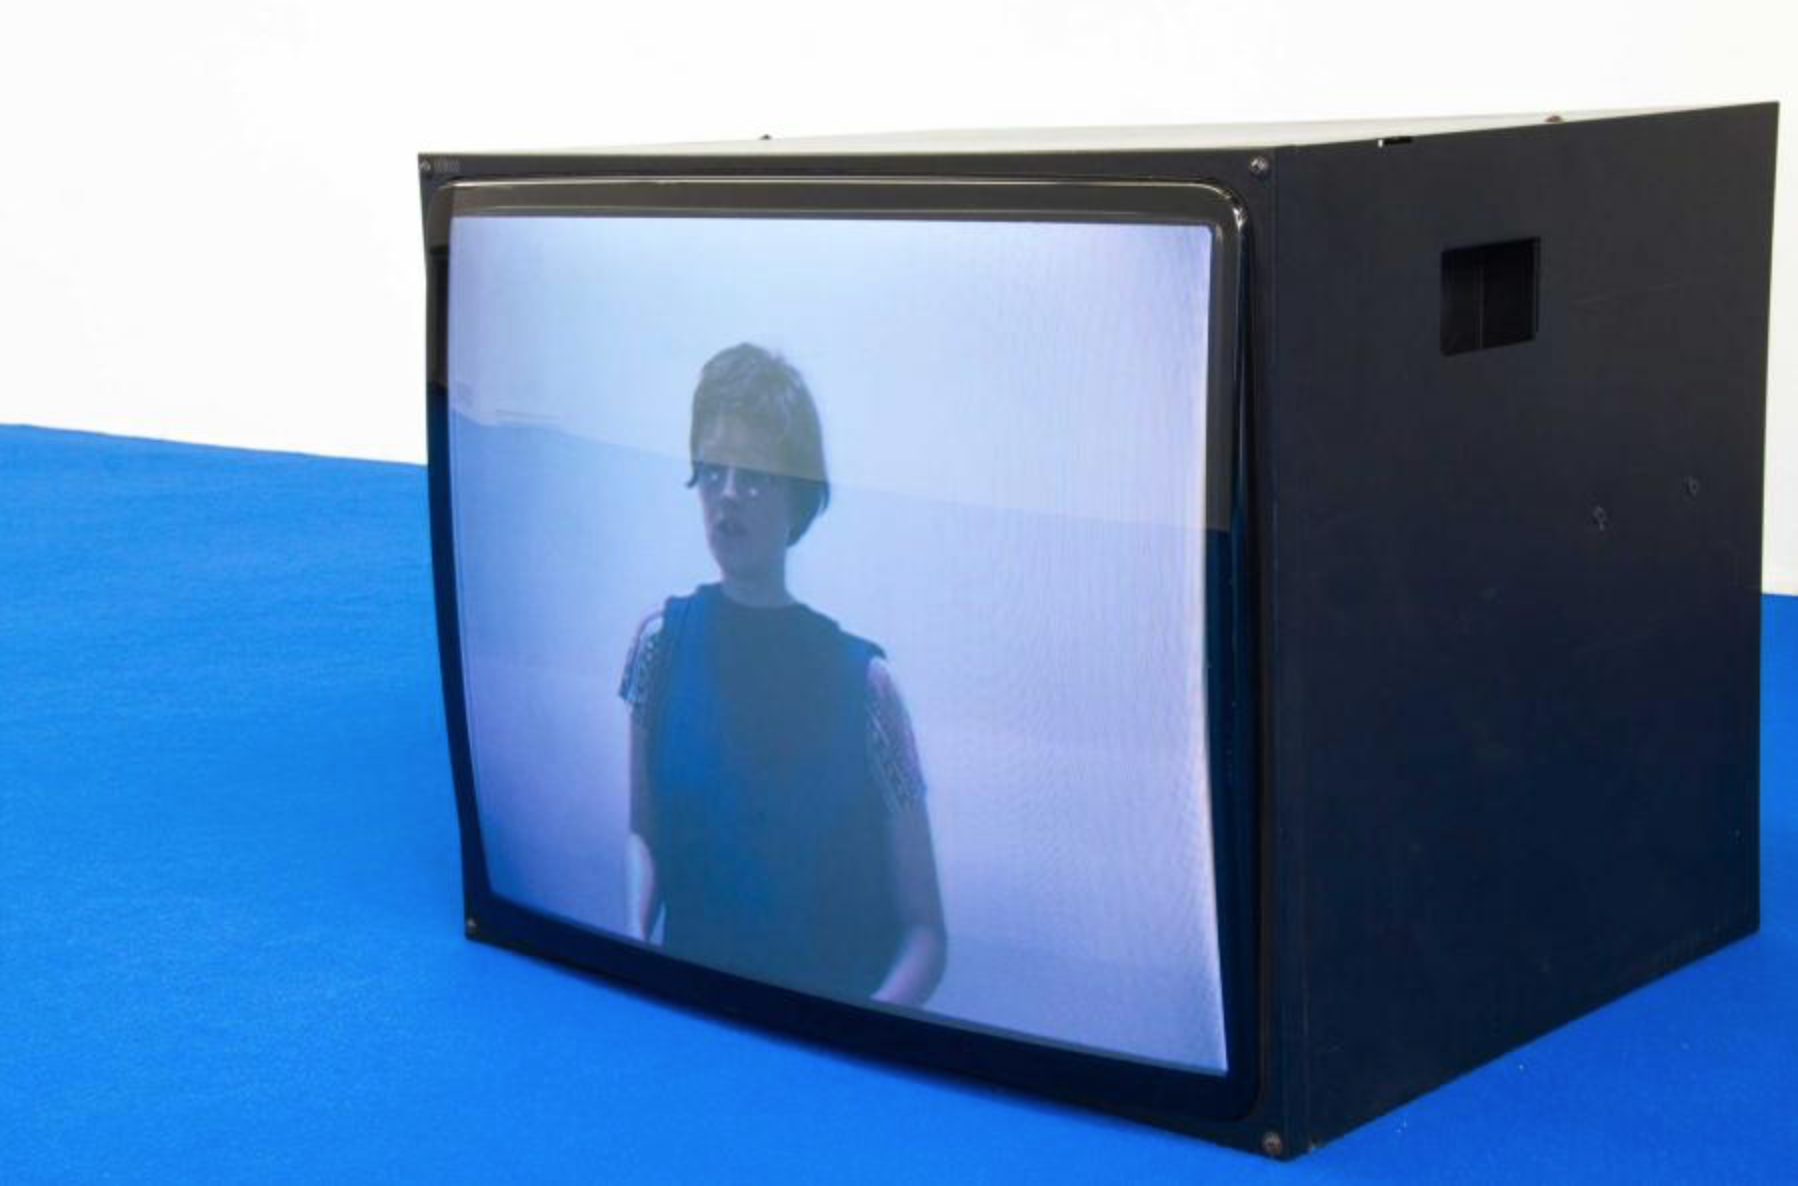 Tamy Ben-Tor, Time and Space, 2011, single channel video, length: 9.45 min, Courtesy: Unttld Contemporary